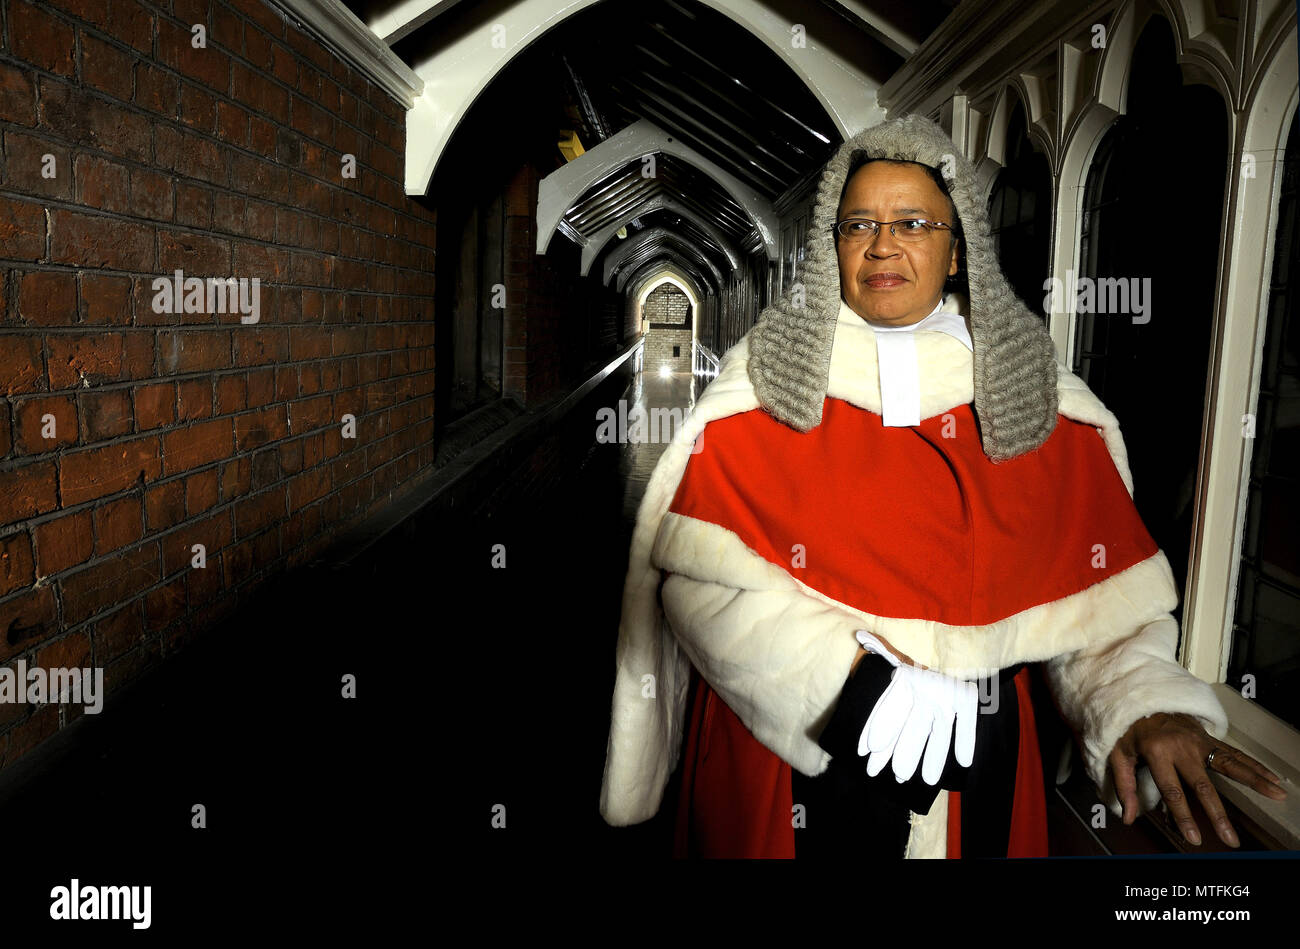 Dame Linda Penelope Dobbs, DBE was a High Court judge in England and Wales from 2004 to 2013. Dobbs was the first non-white person to be appointed to the senior judiciary of England and Wales. - Stock Image